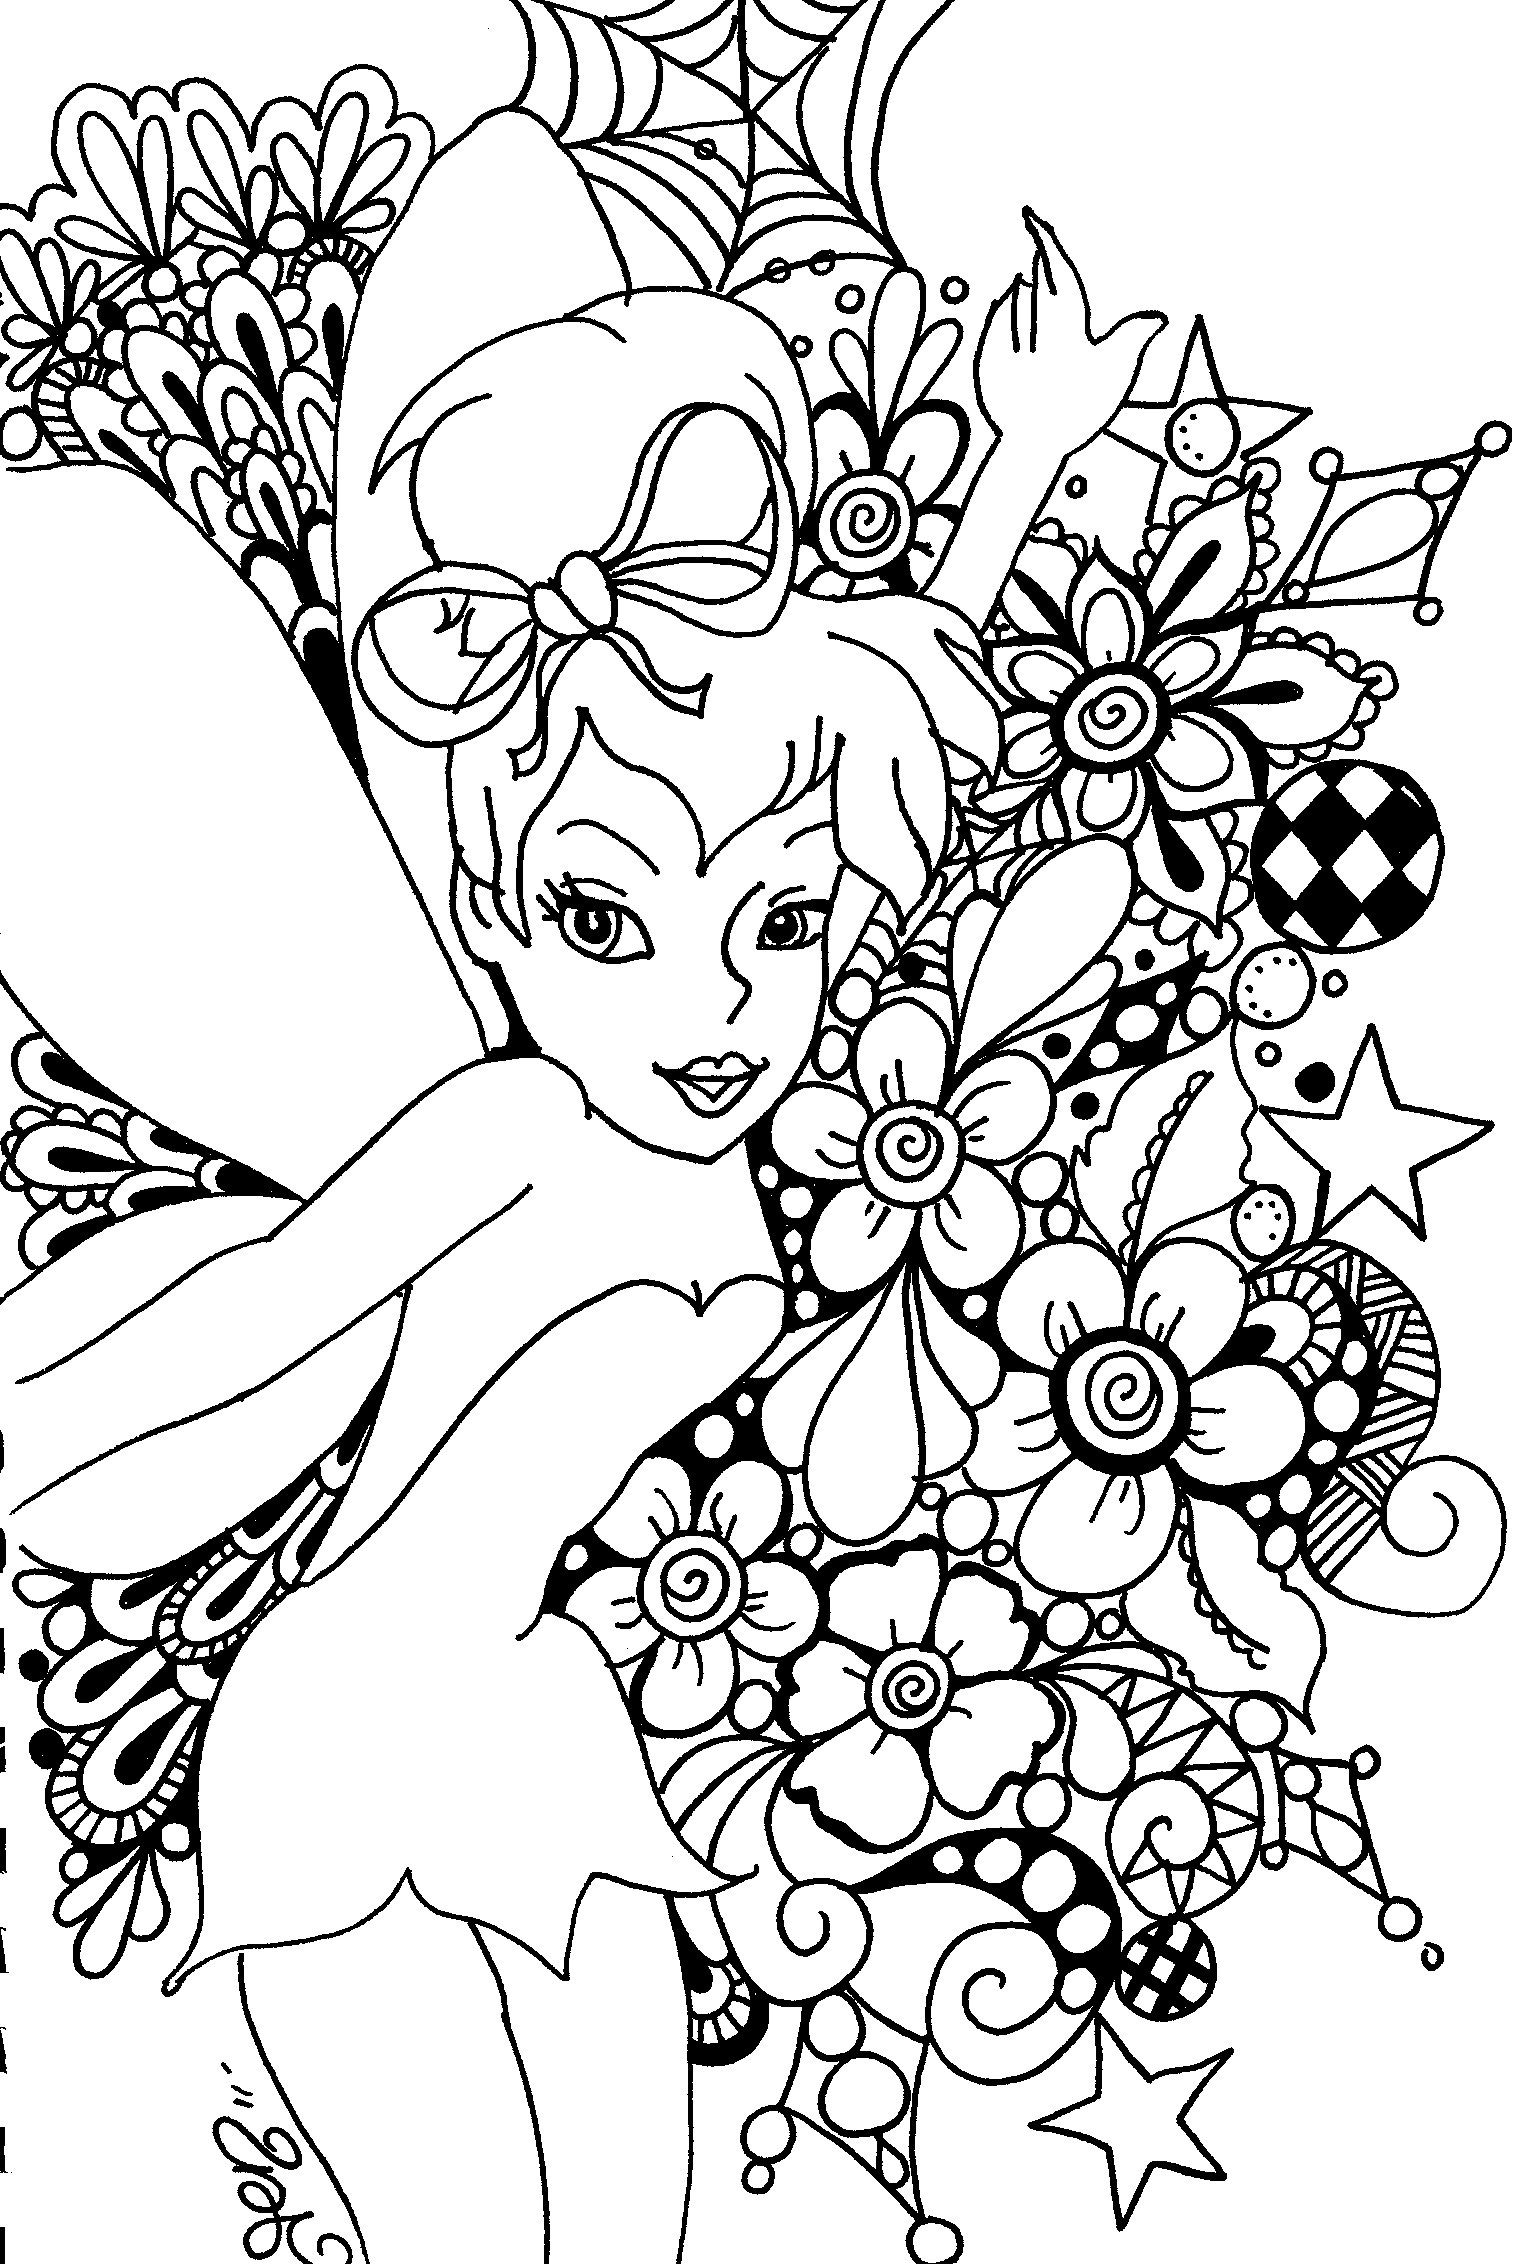 free printable tinkerbell coloring pages tinkerbell coloring pages team colors printable coloring pages tinkerbell free